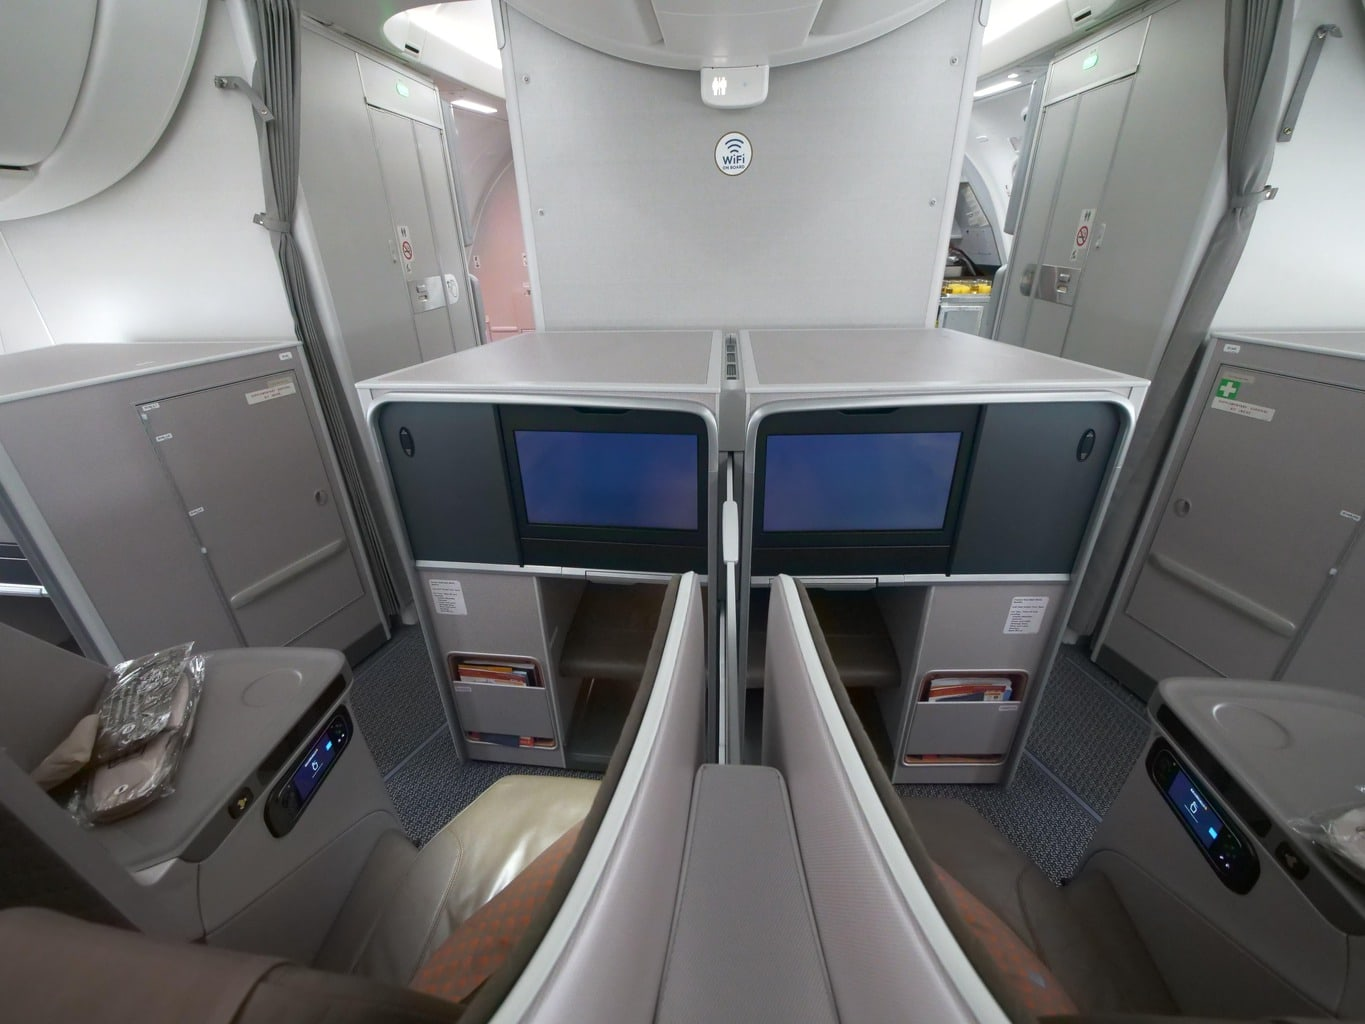 Front seat configuration on the Singapore Airlines Boeing 787-10 Business Class